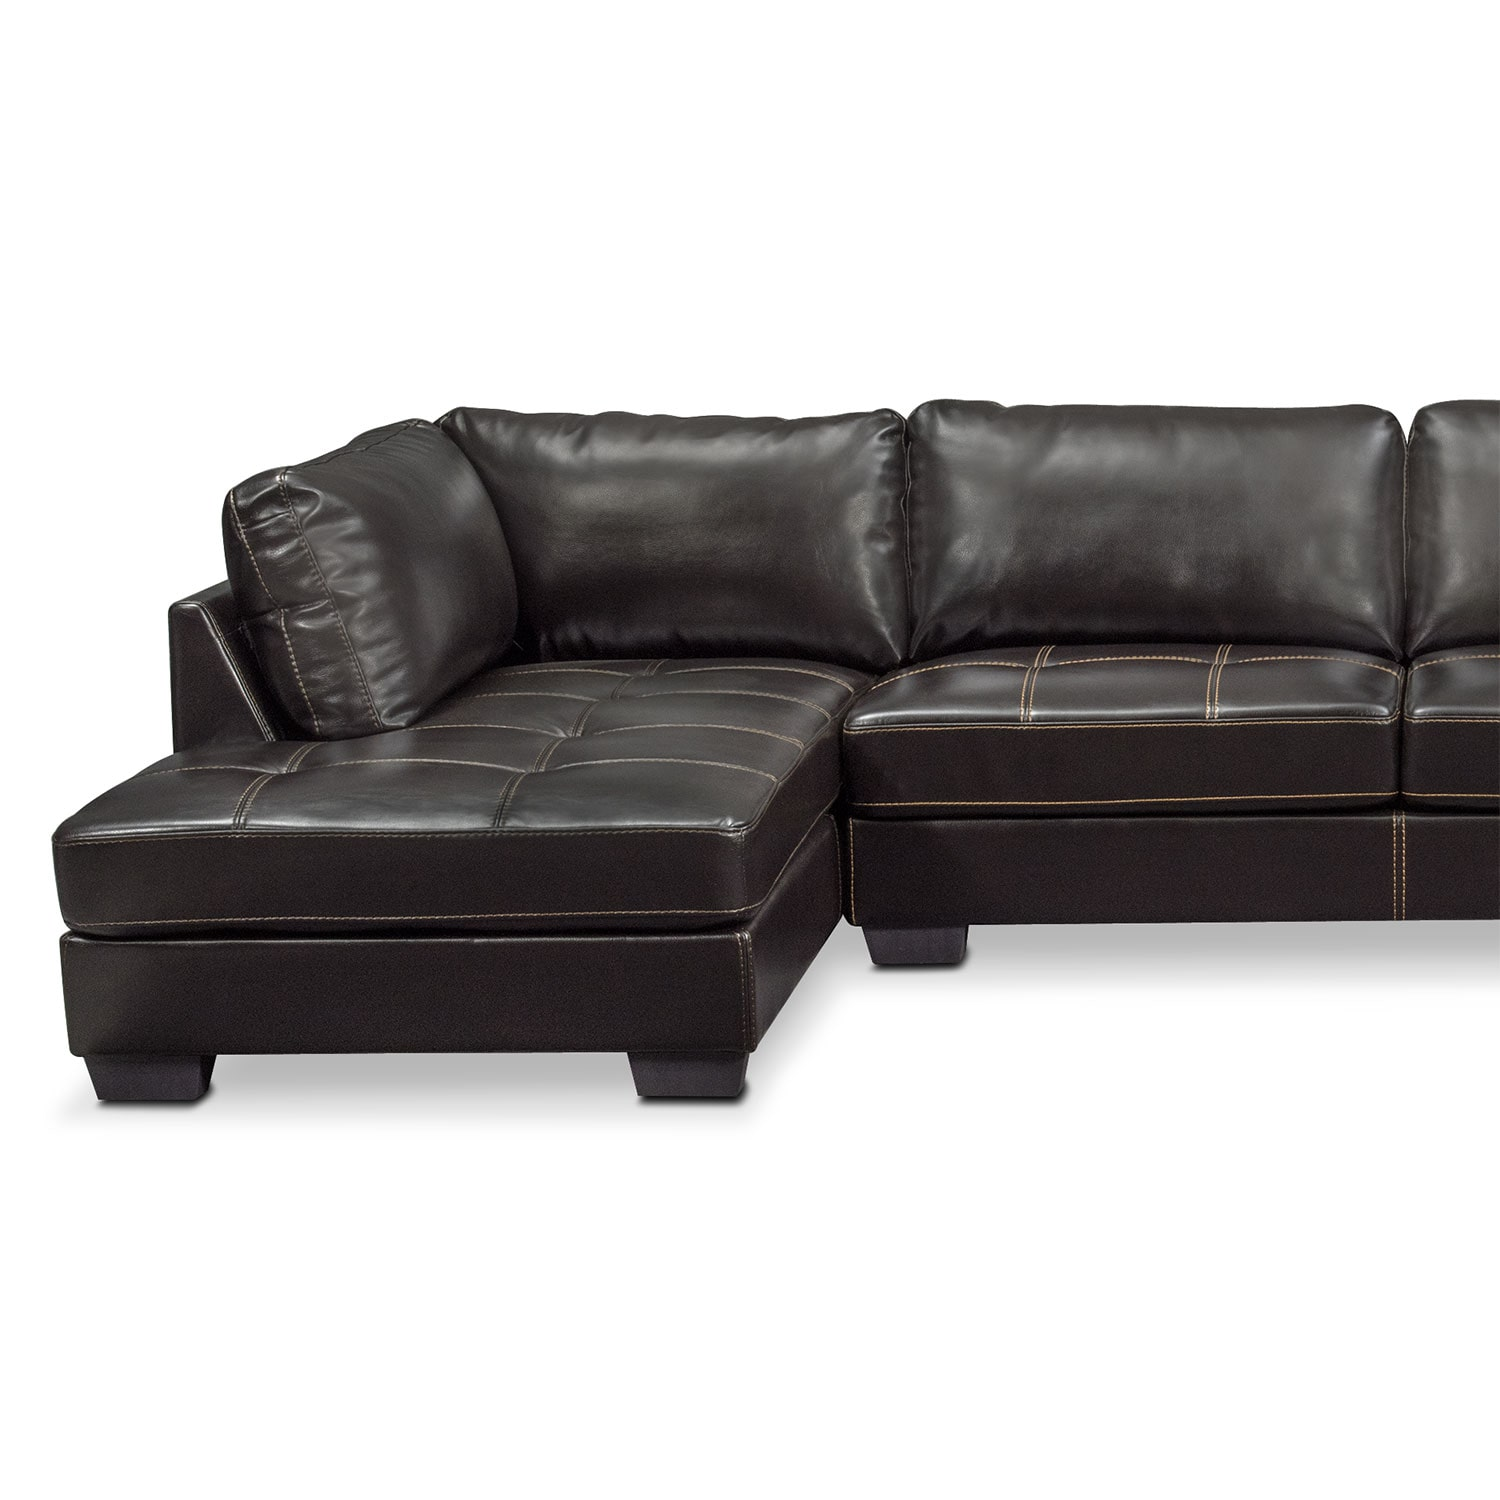 Santana 3 Piece Sectional Black